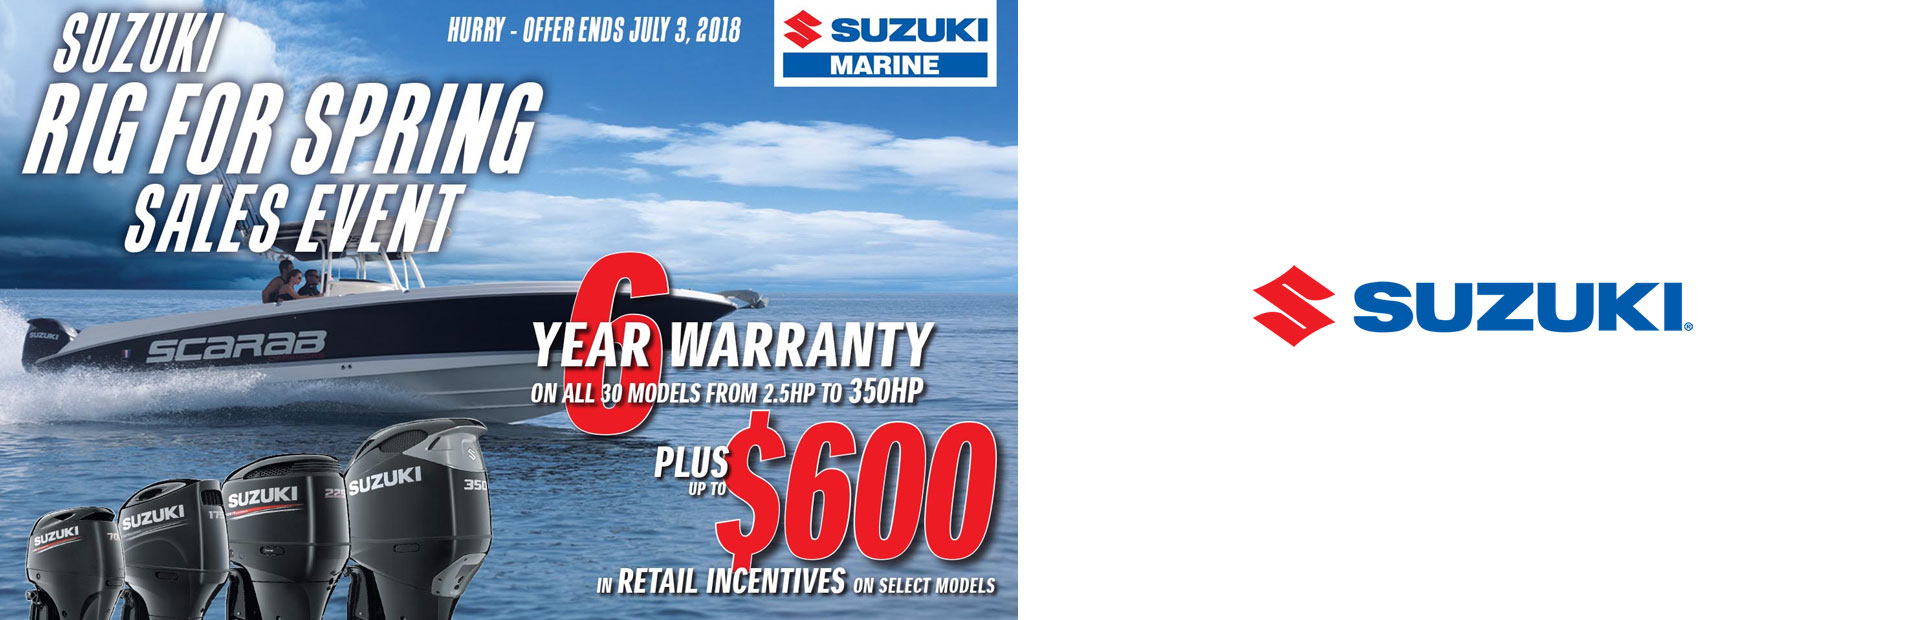 Suzuki Rig for Spring Sales Event